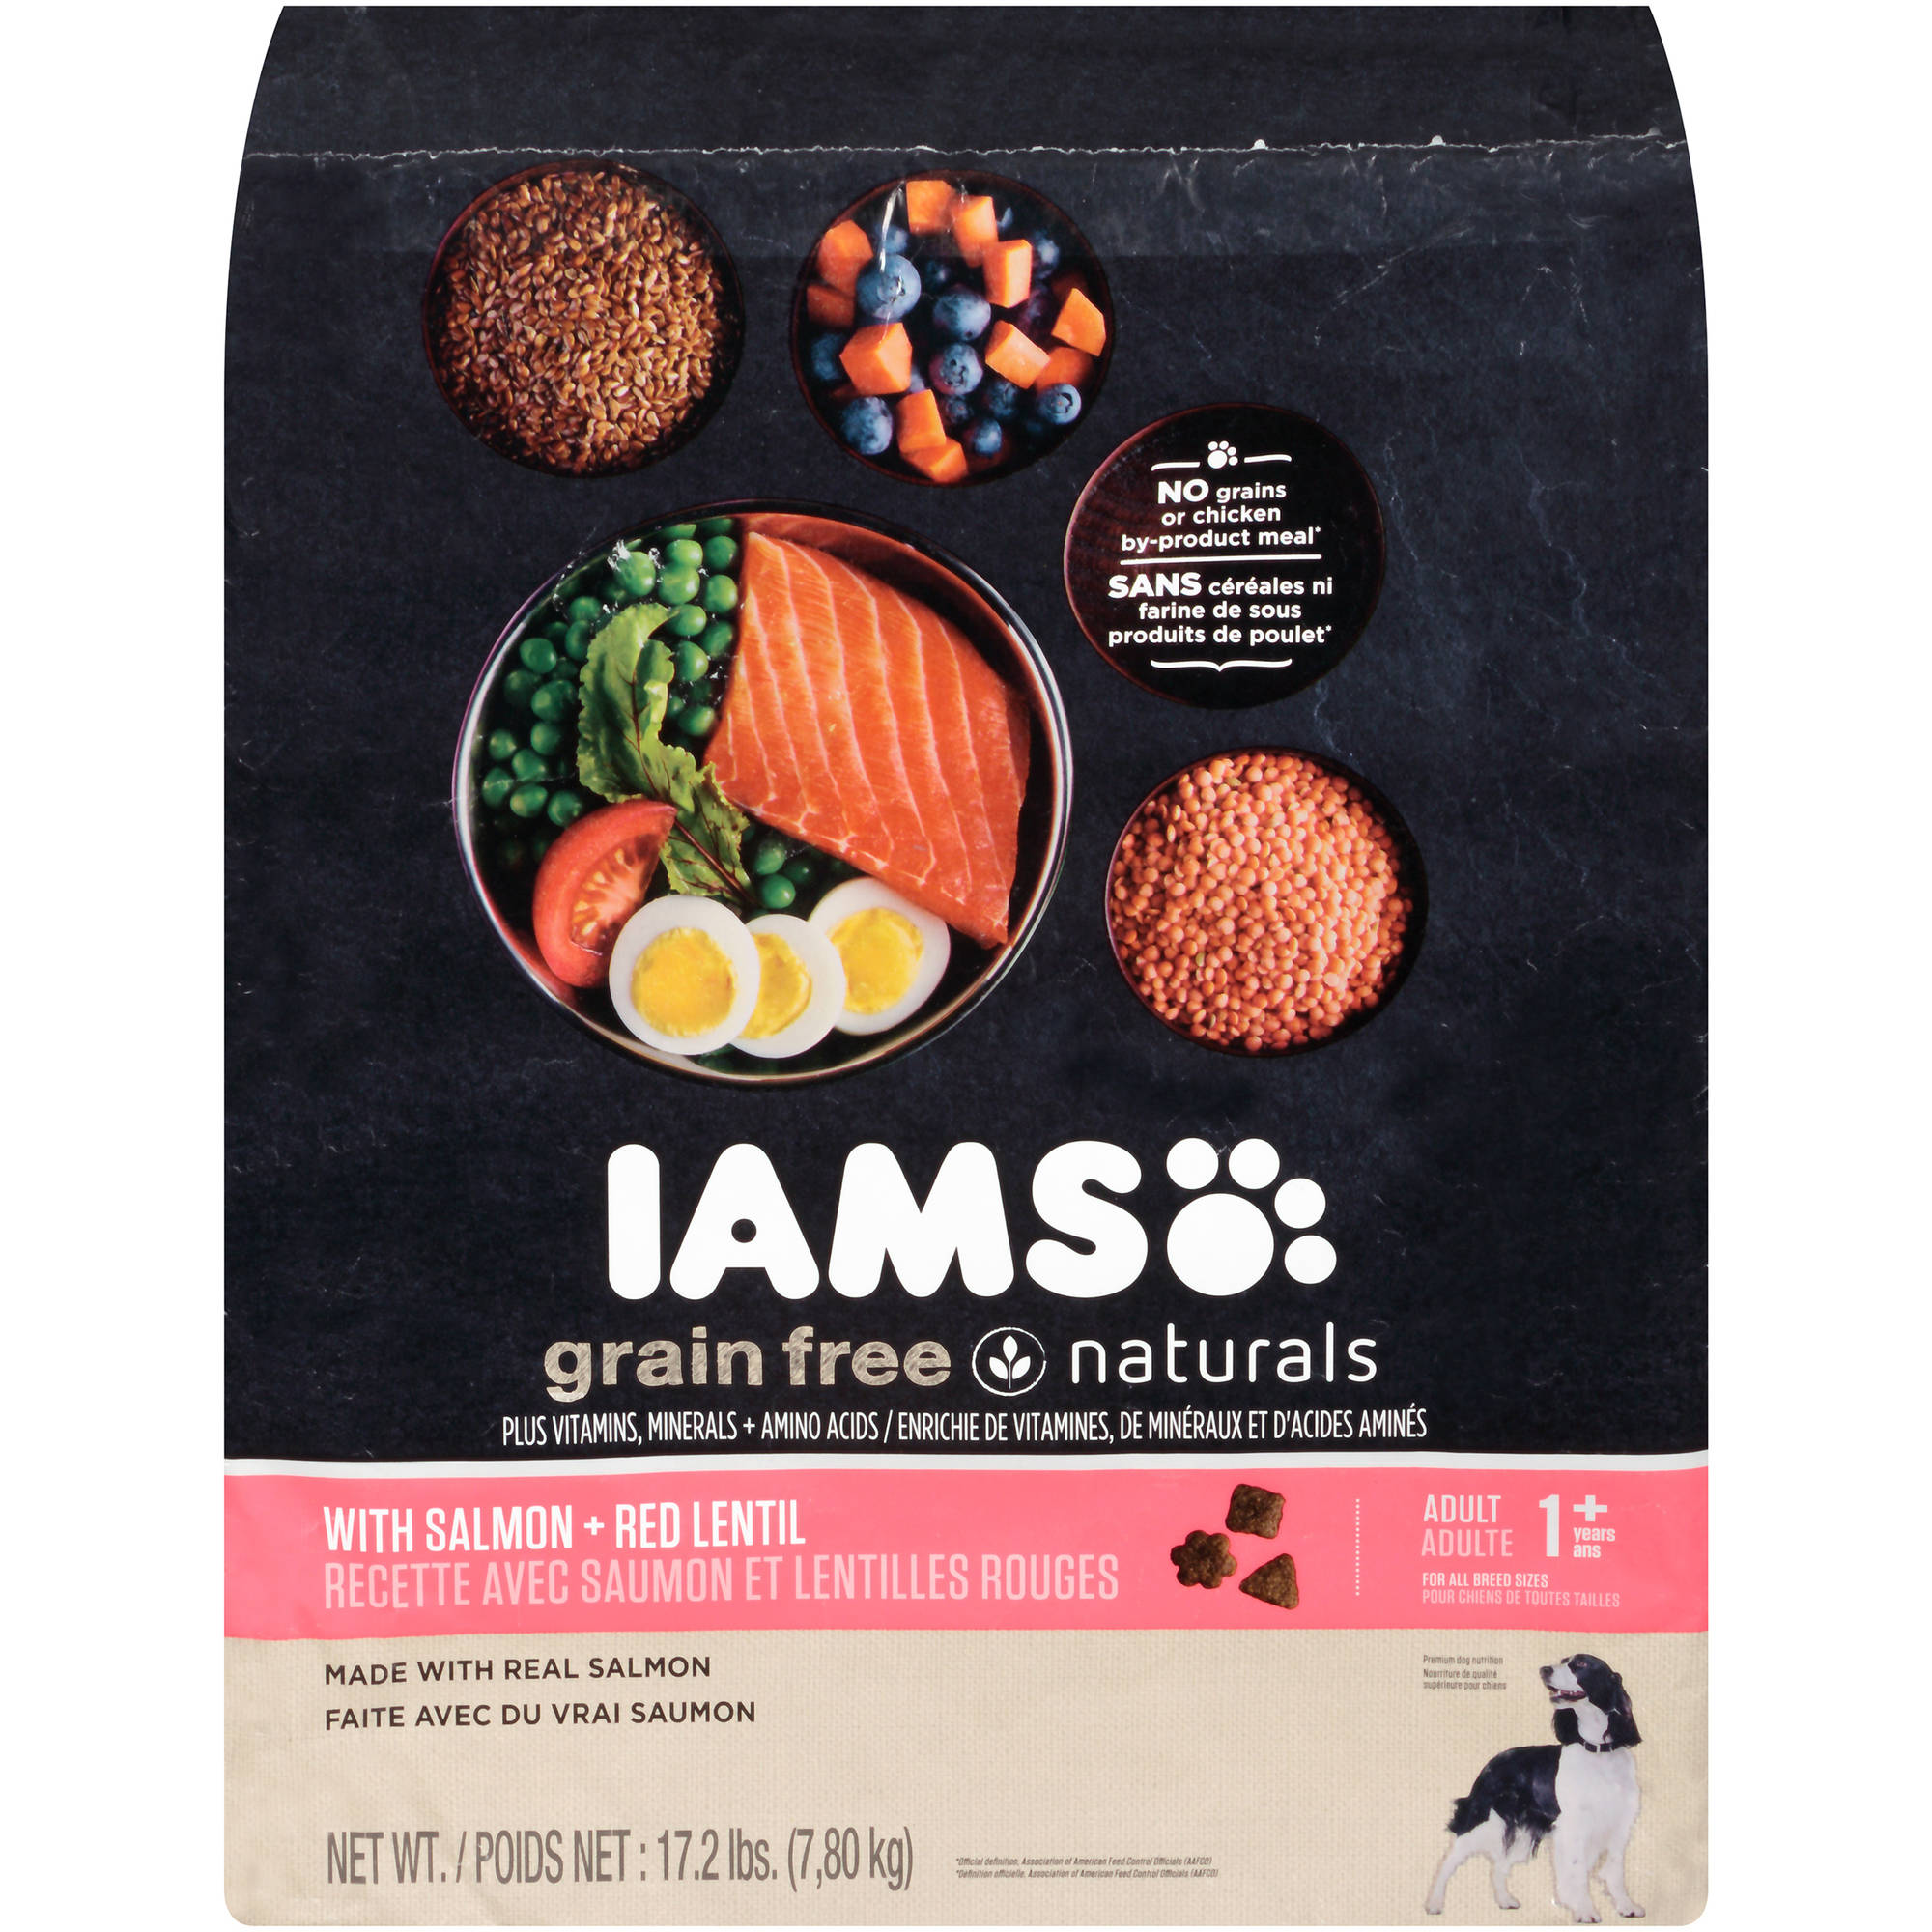 Iams Grain Free Naturals with Salmon + Red Lentil Adult 1+ Years Dog Food 17.2  lb. Bag